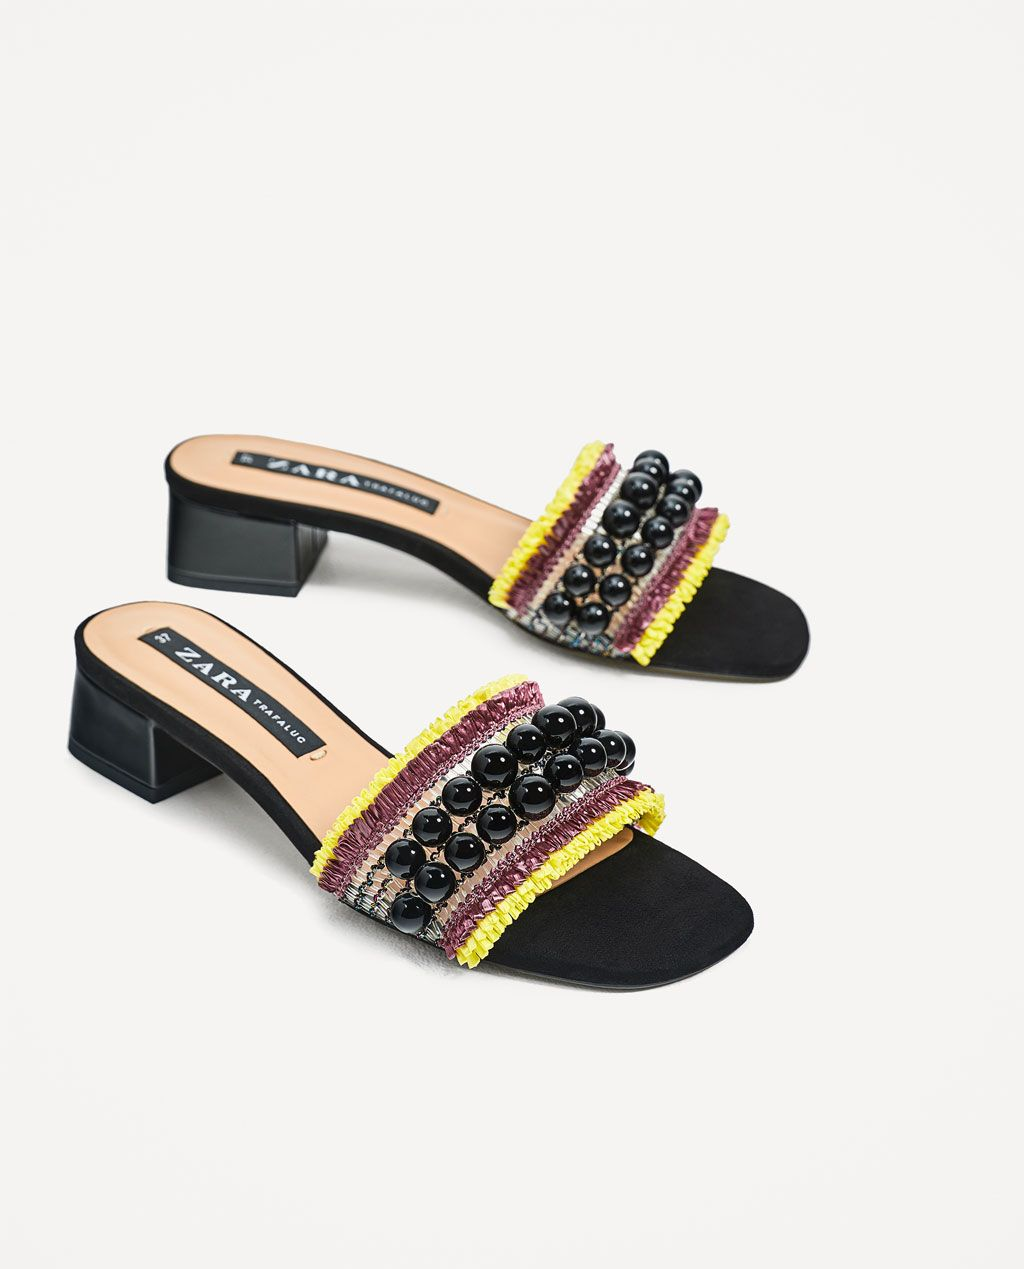 5b0c266433470 Image 1 of BEADED MULES from Zara | spring shoes in 2019 | Shoes ...